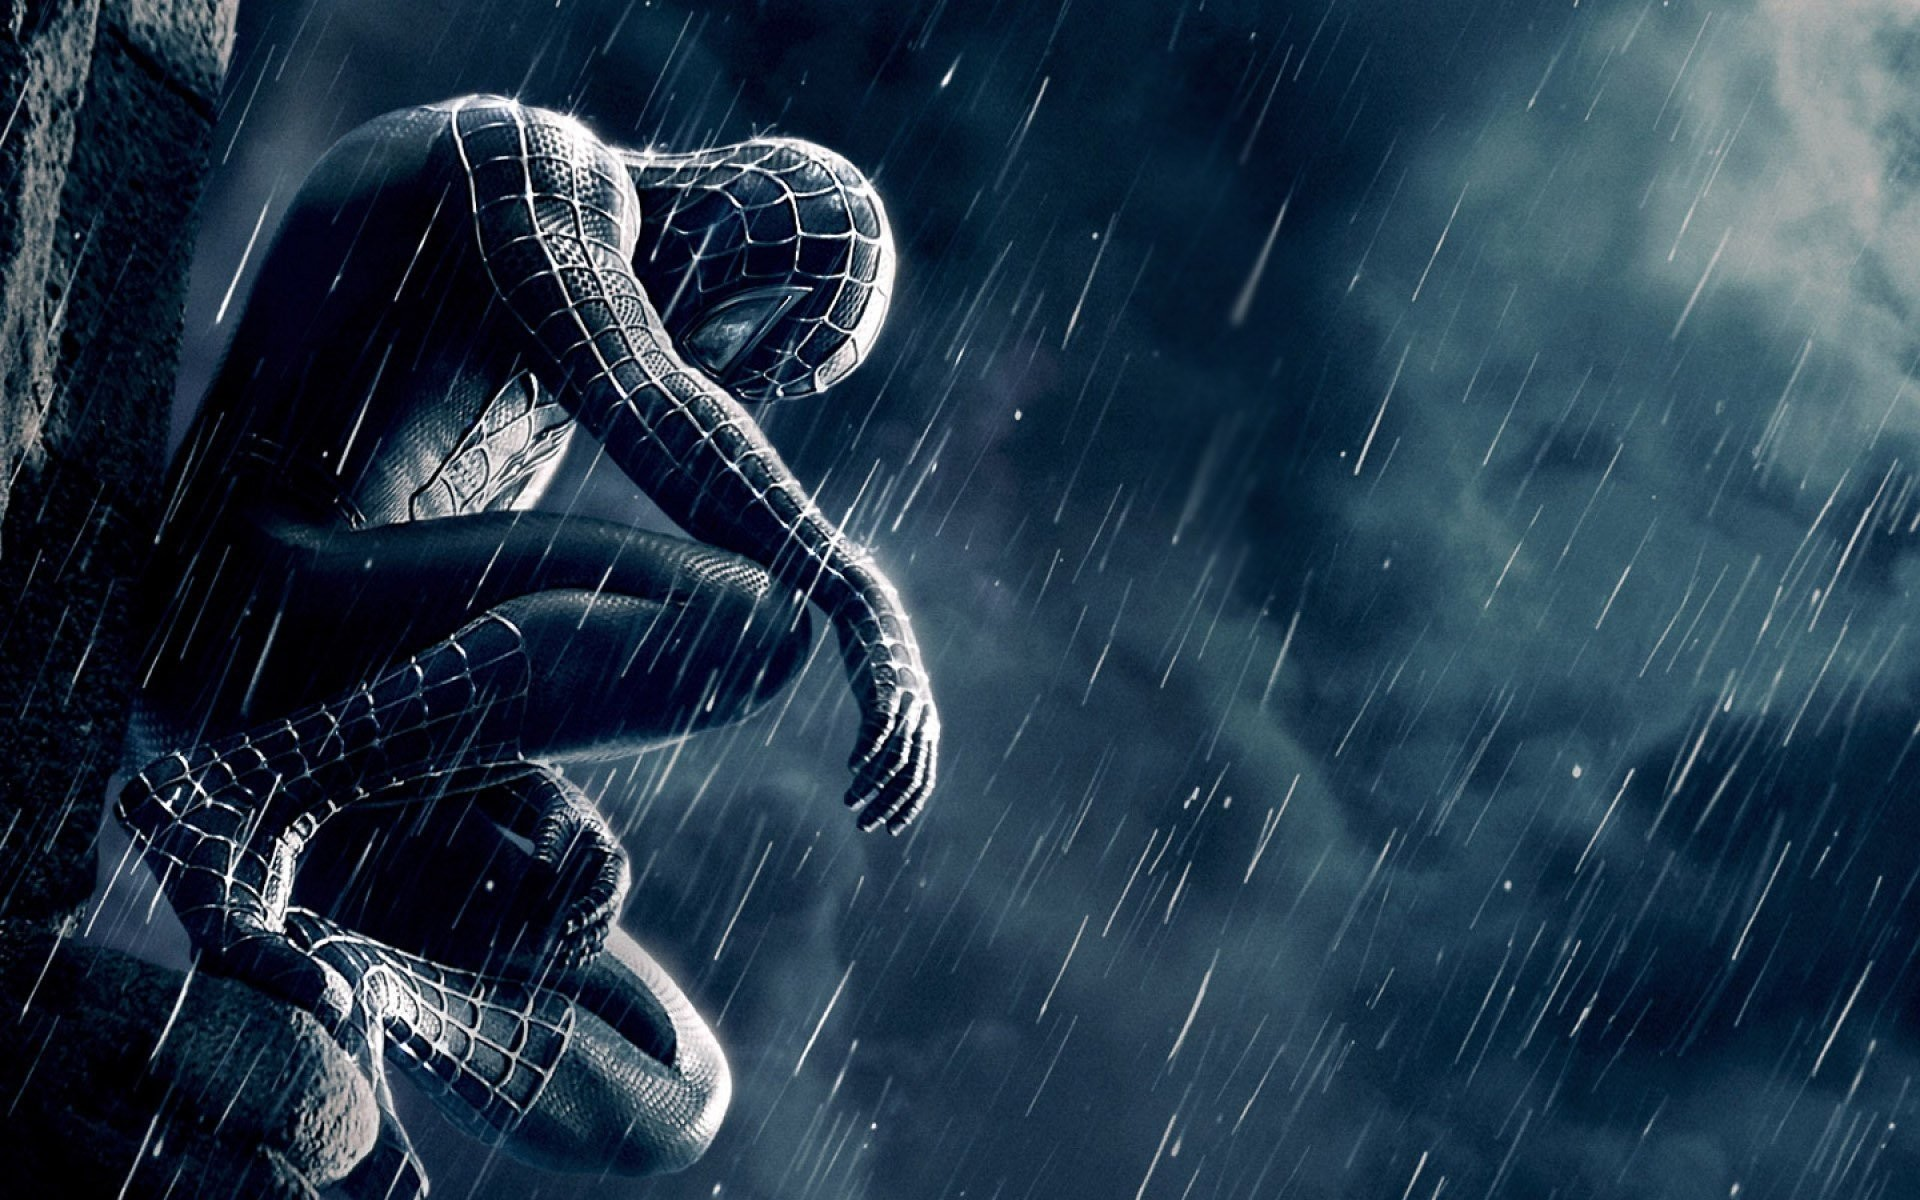 Spider man 3 wallpaper wallpapertag - Black and white spiderman wallpaper ...